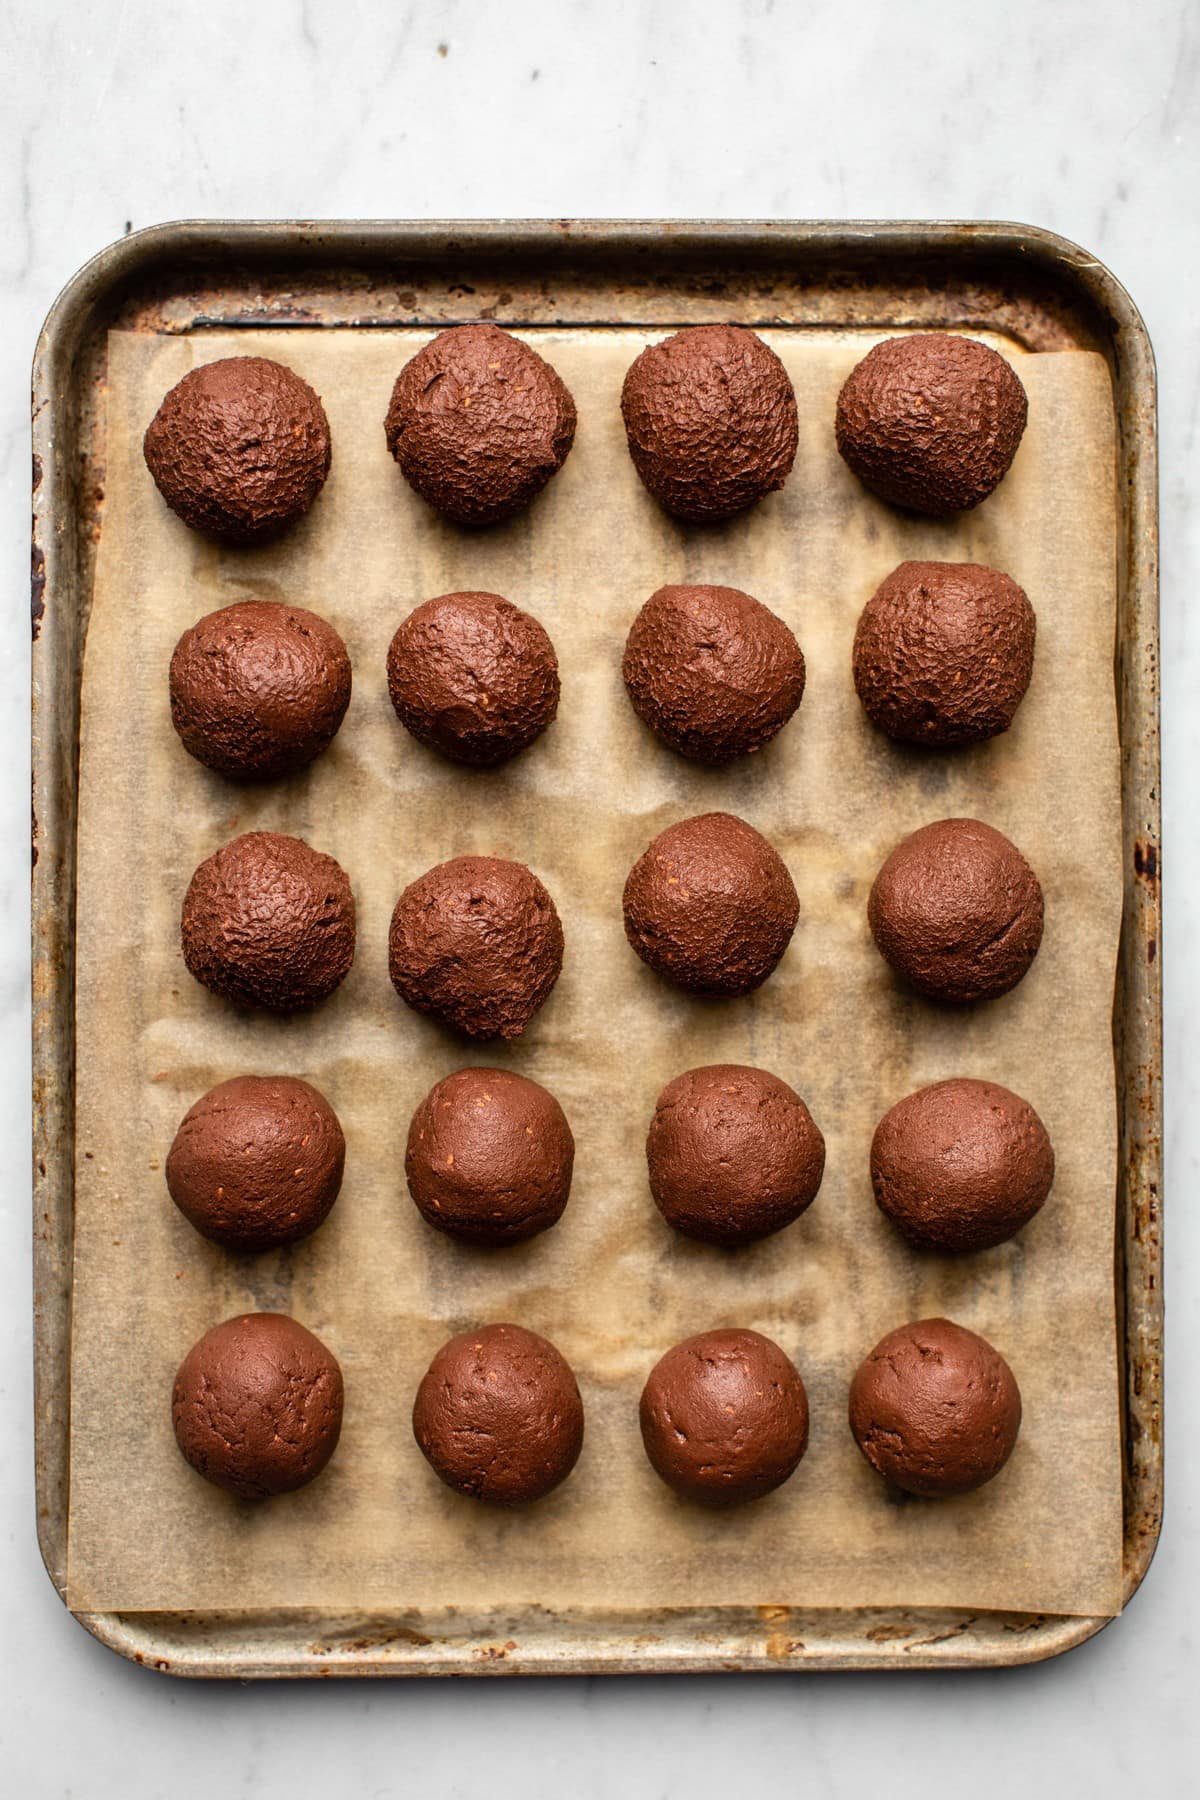 truffles arranged on baking sheet lined with parchment paper